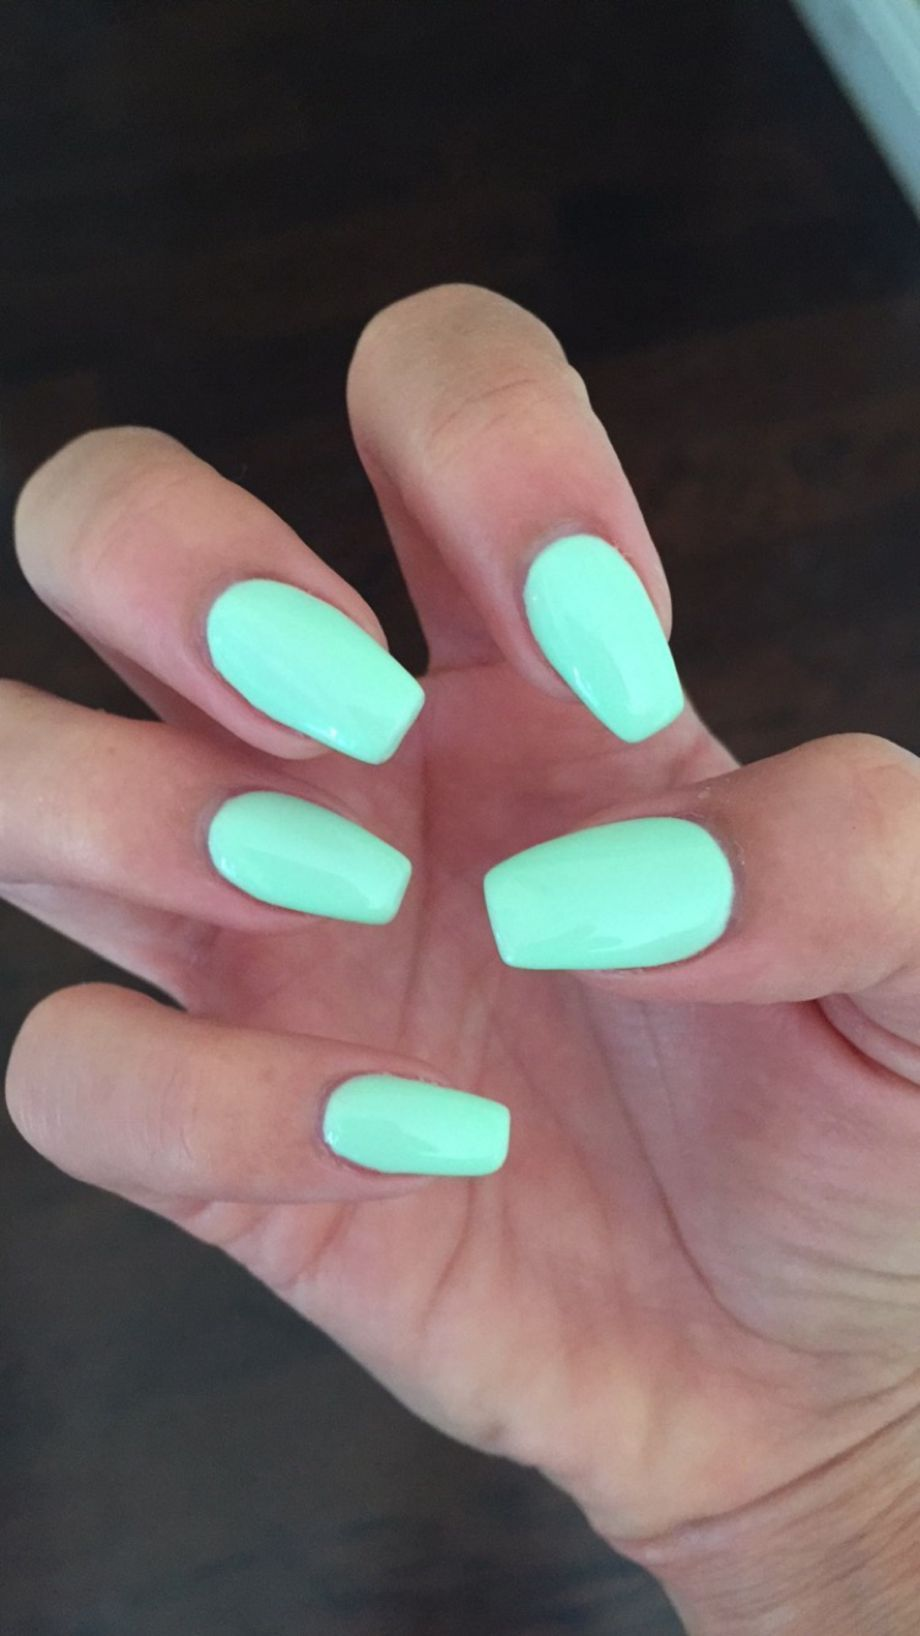 Summer Nails Acrylic Acrylic Nails Designs For Summer Be It Short Long Almond Shaped Stiletto Square Sh Mint Nails Nail Designs Summer Acrylic Summer Nails